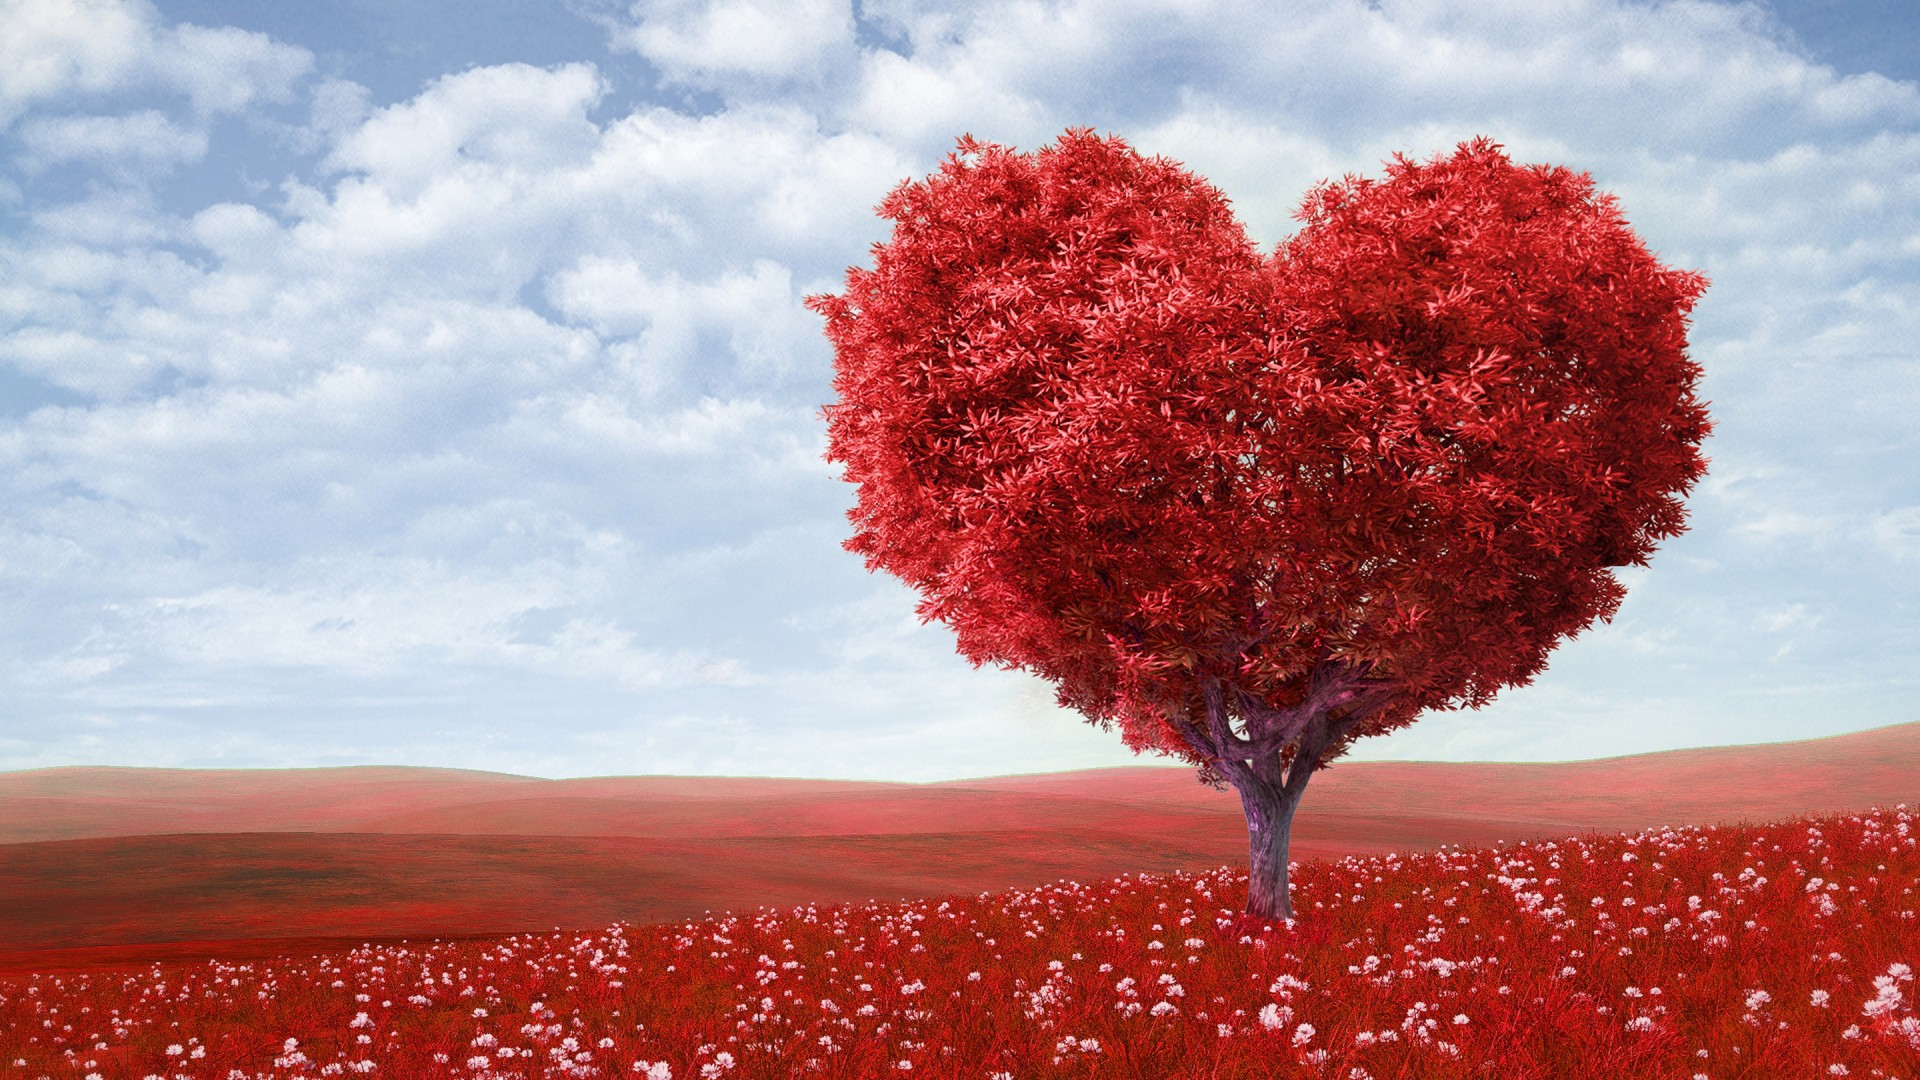 Love Heart Tree Wallpaper For Desktop And Mobiles Iphone 7 Plus